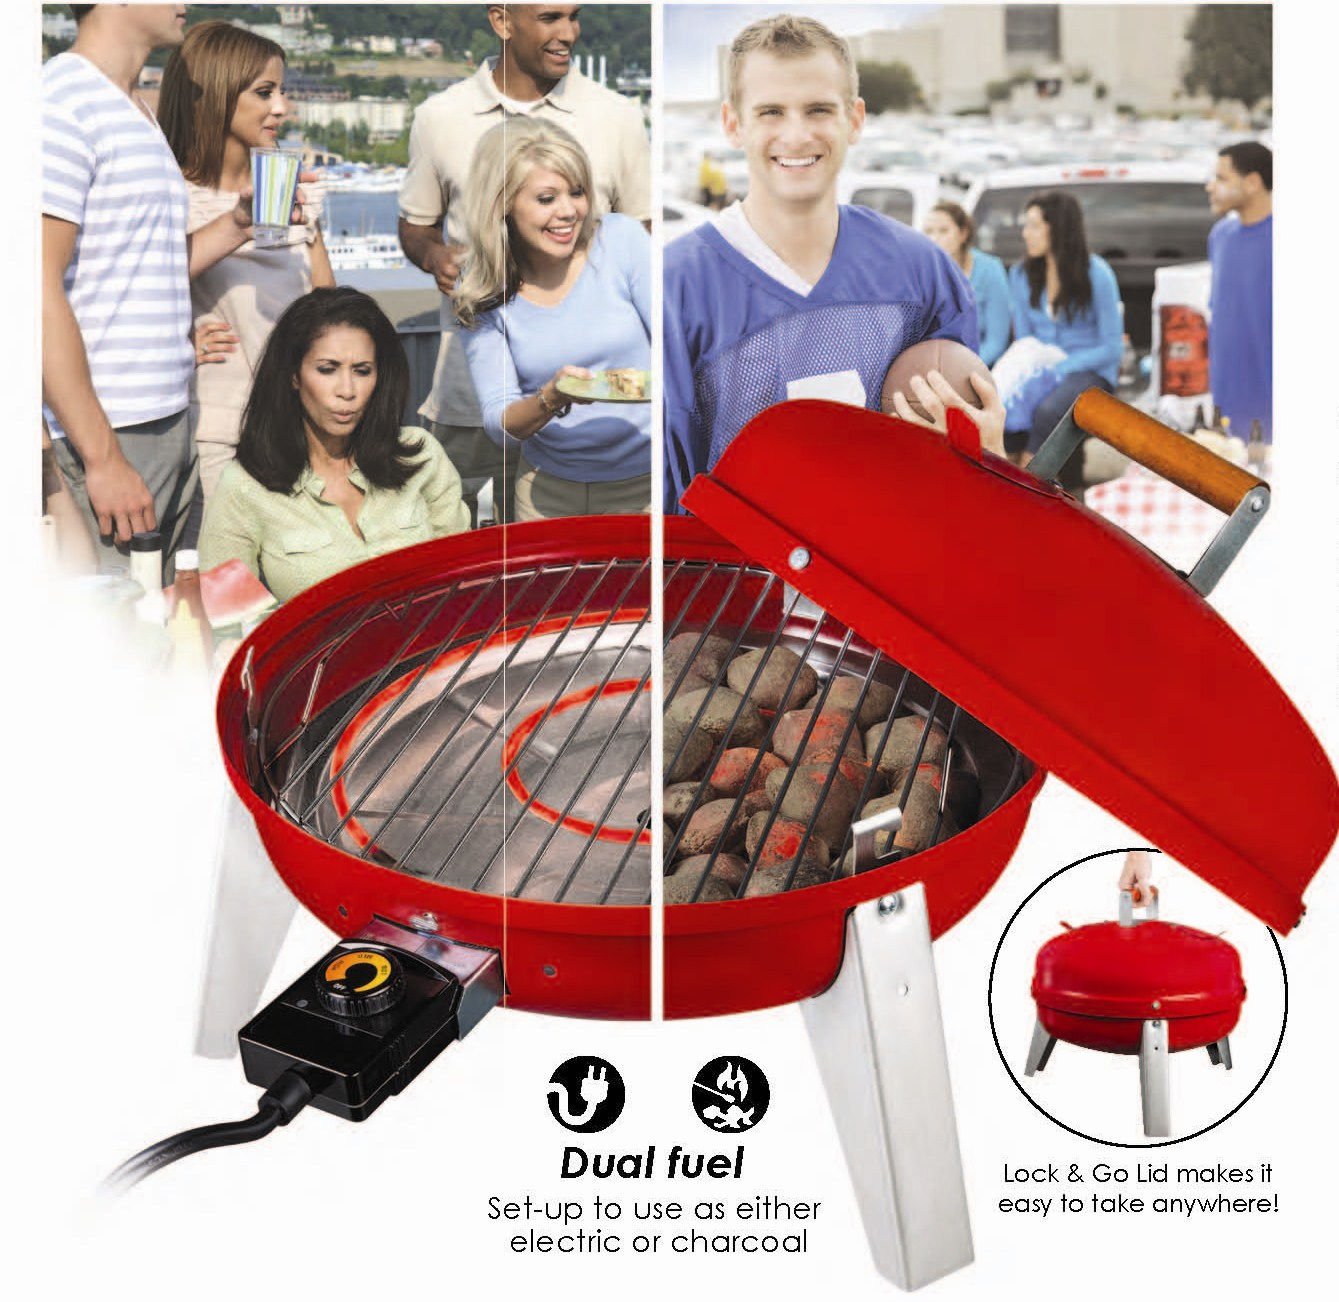 Wherever Grill The Only Dual Fuel Electric Charcoal Bbq